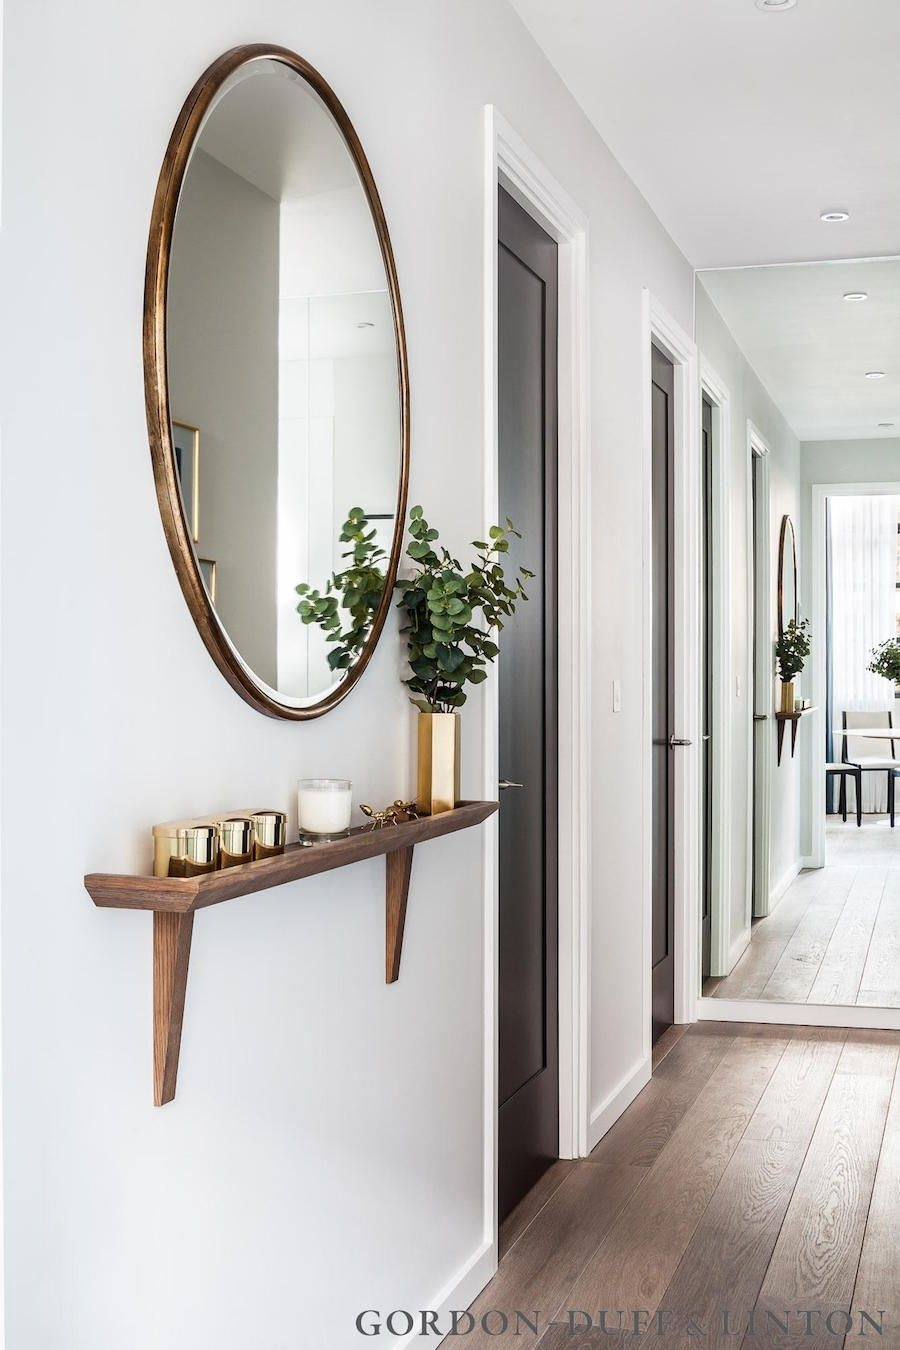 30 Of The Most Pretty & Practical Entryways | Minimal, Shelves And In Most Recently Released Entryway Wall Accents (View 10 of 15)